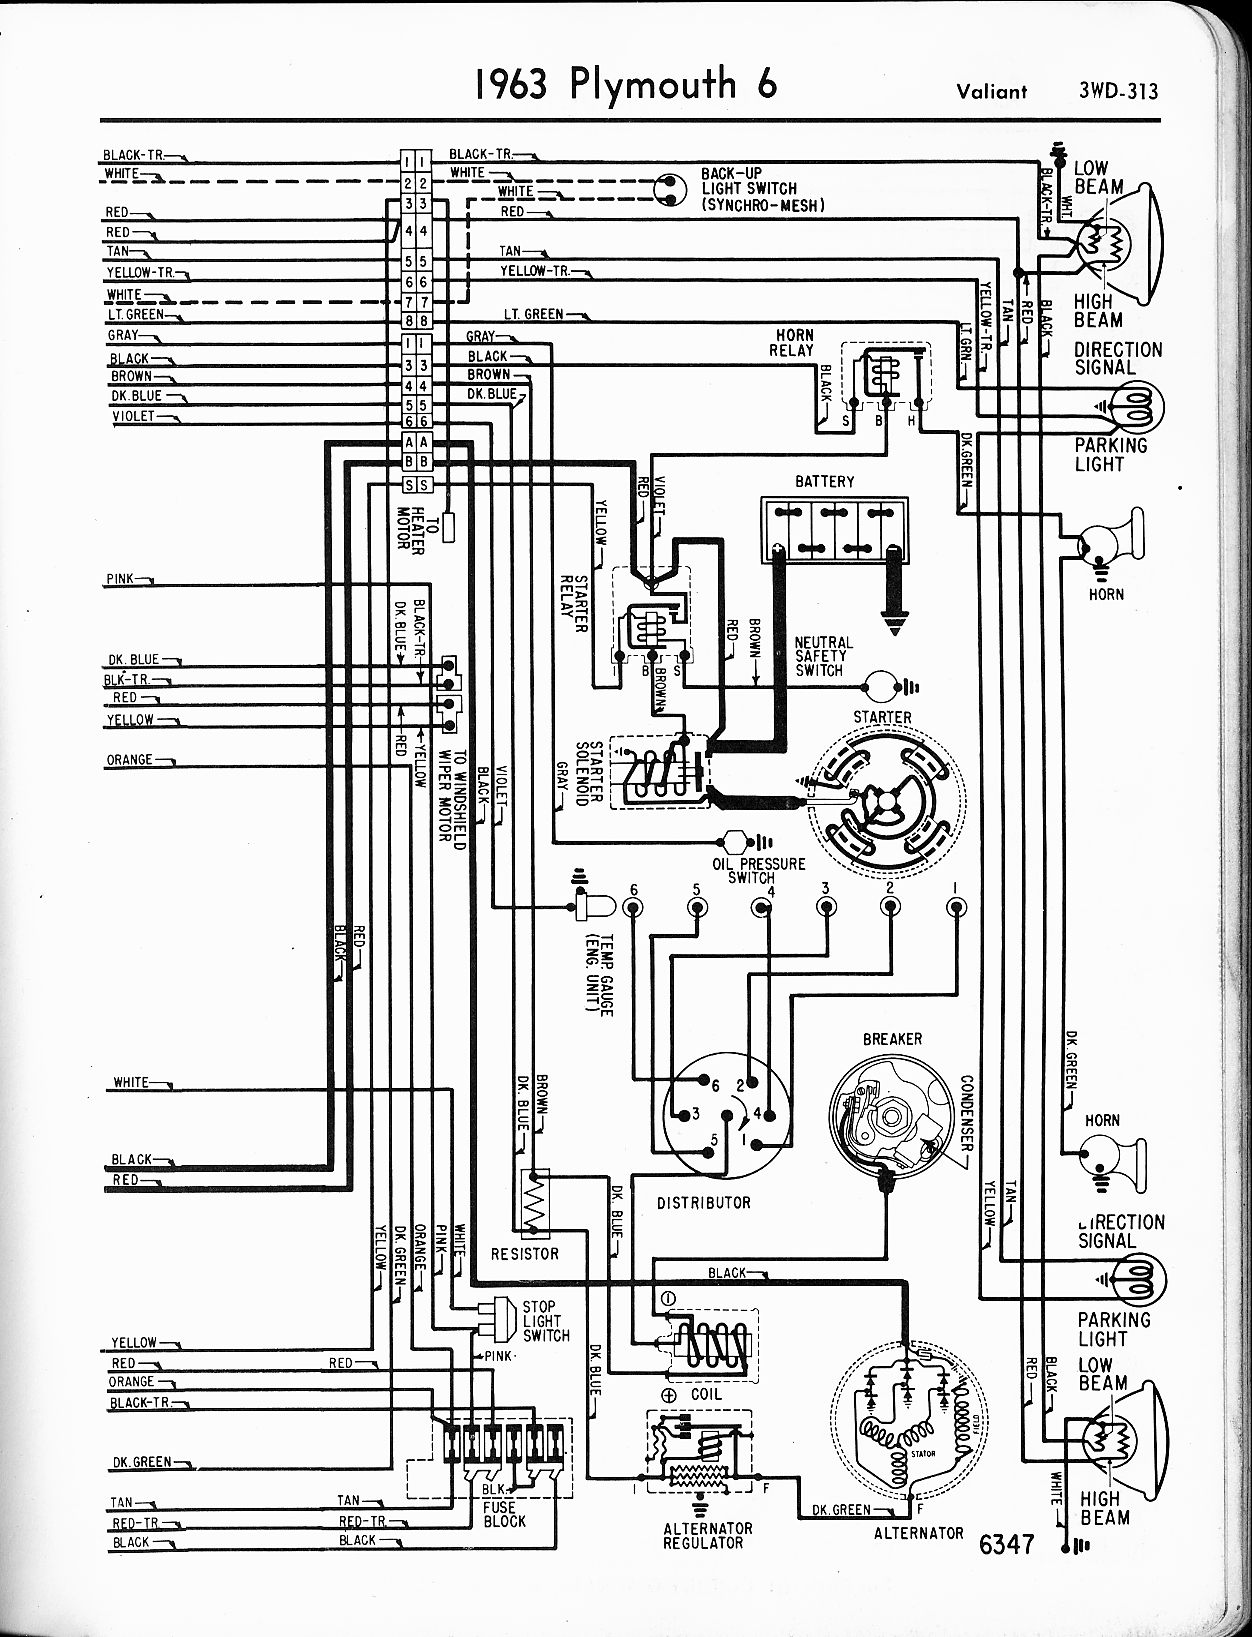 349660 Radio Noise Suppressing Capacitor as well Bruno Asl 250 Wiring Harness Wiring Diagrams together with 2001 Chrysler Town And Country Fuse Box Diagram besides 2003 Vw Passat Wiring Diagram And With as well 1994 Jeep Cherokee Wiring Diagram. on chrysler radio wiring diagram